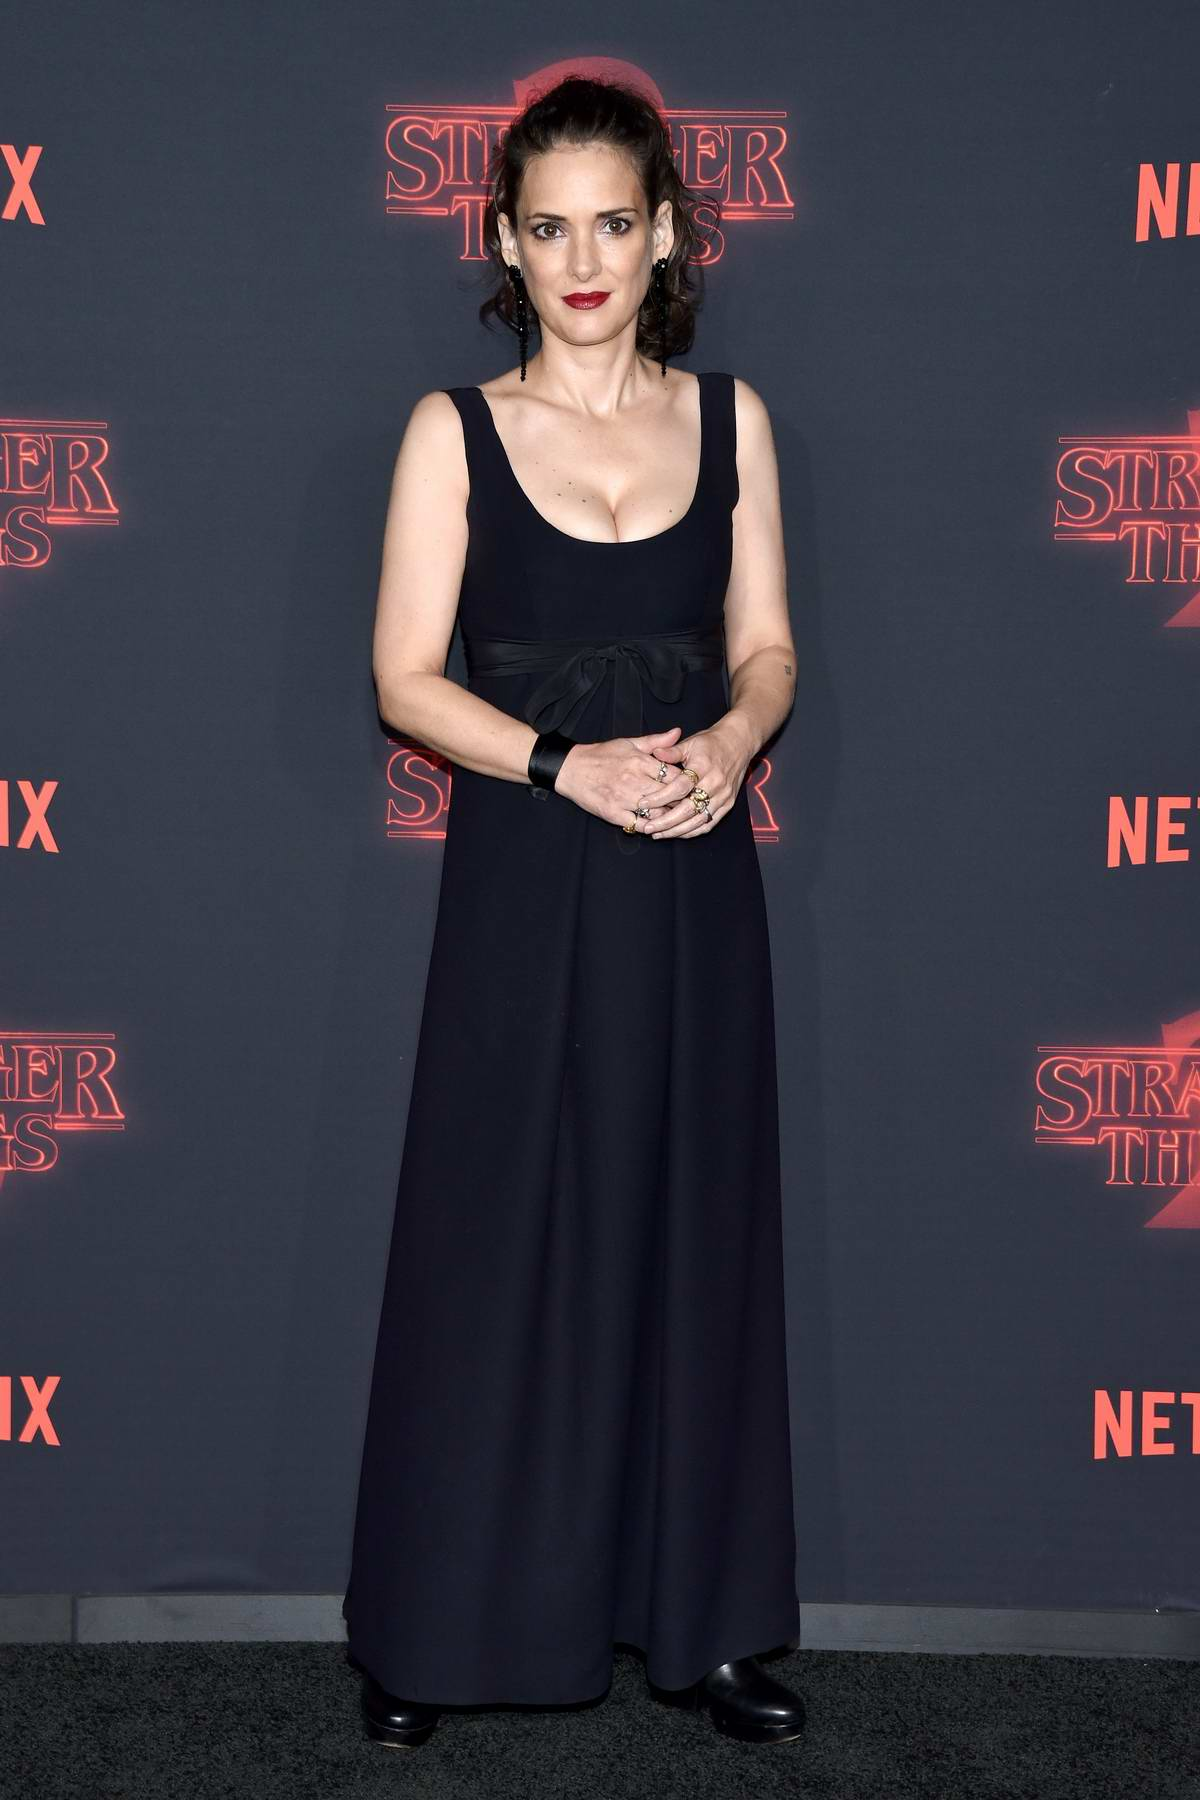 Winona Ryder at the premiere of Stranger Things 2 in Los Angeles